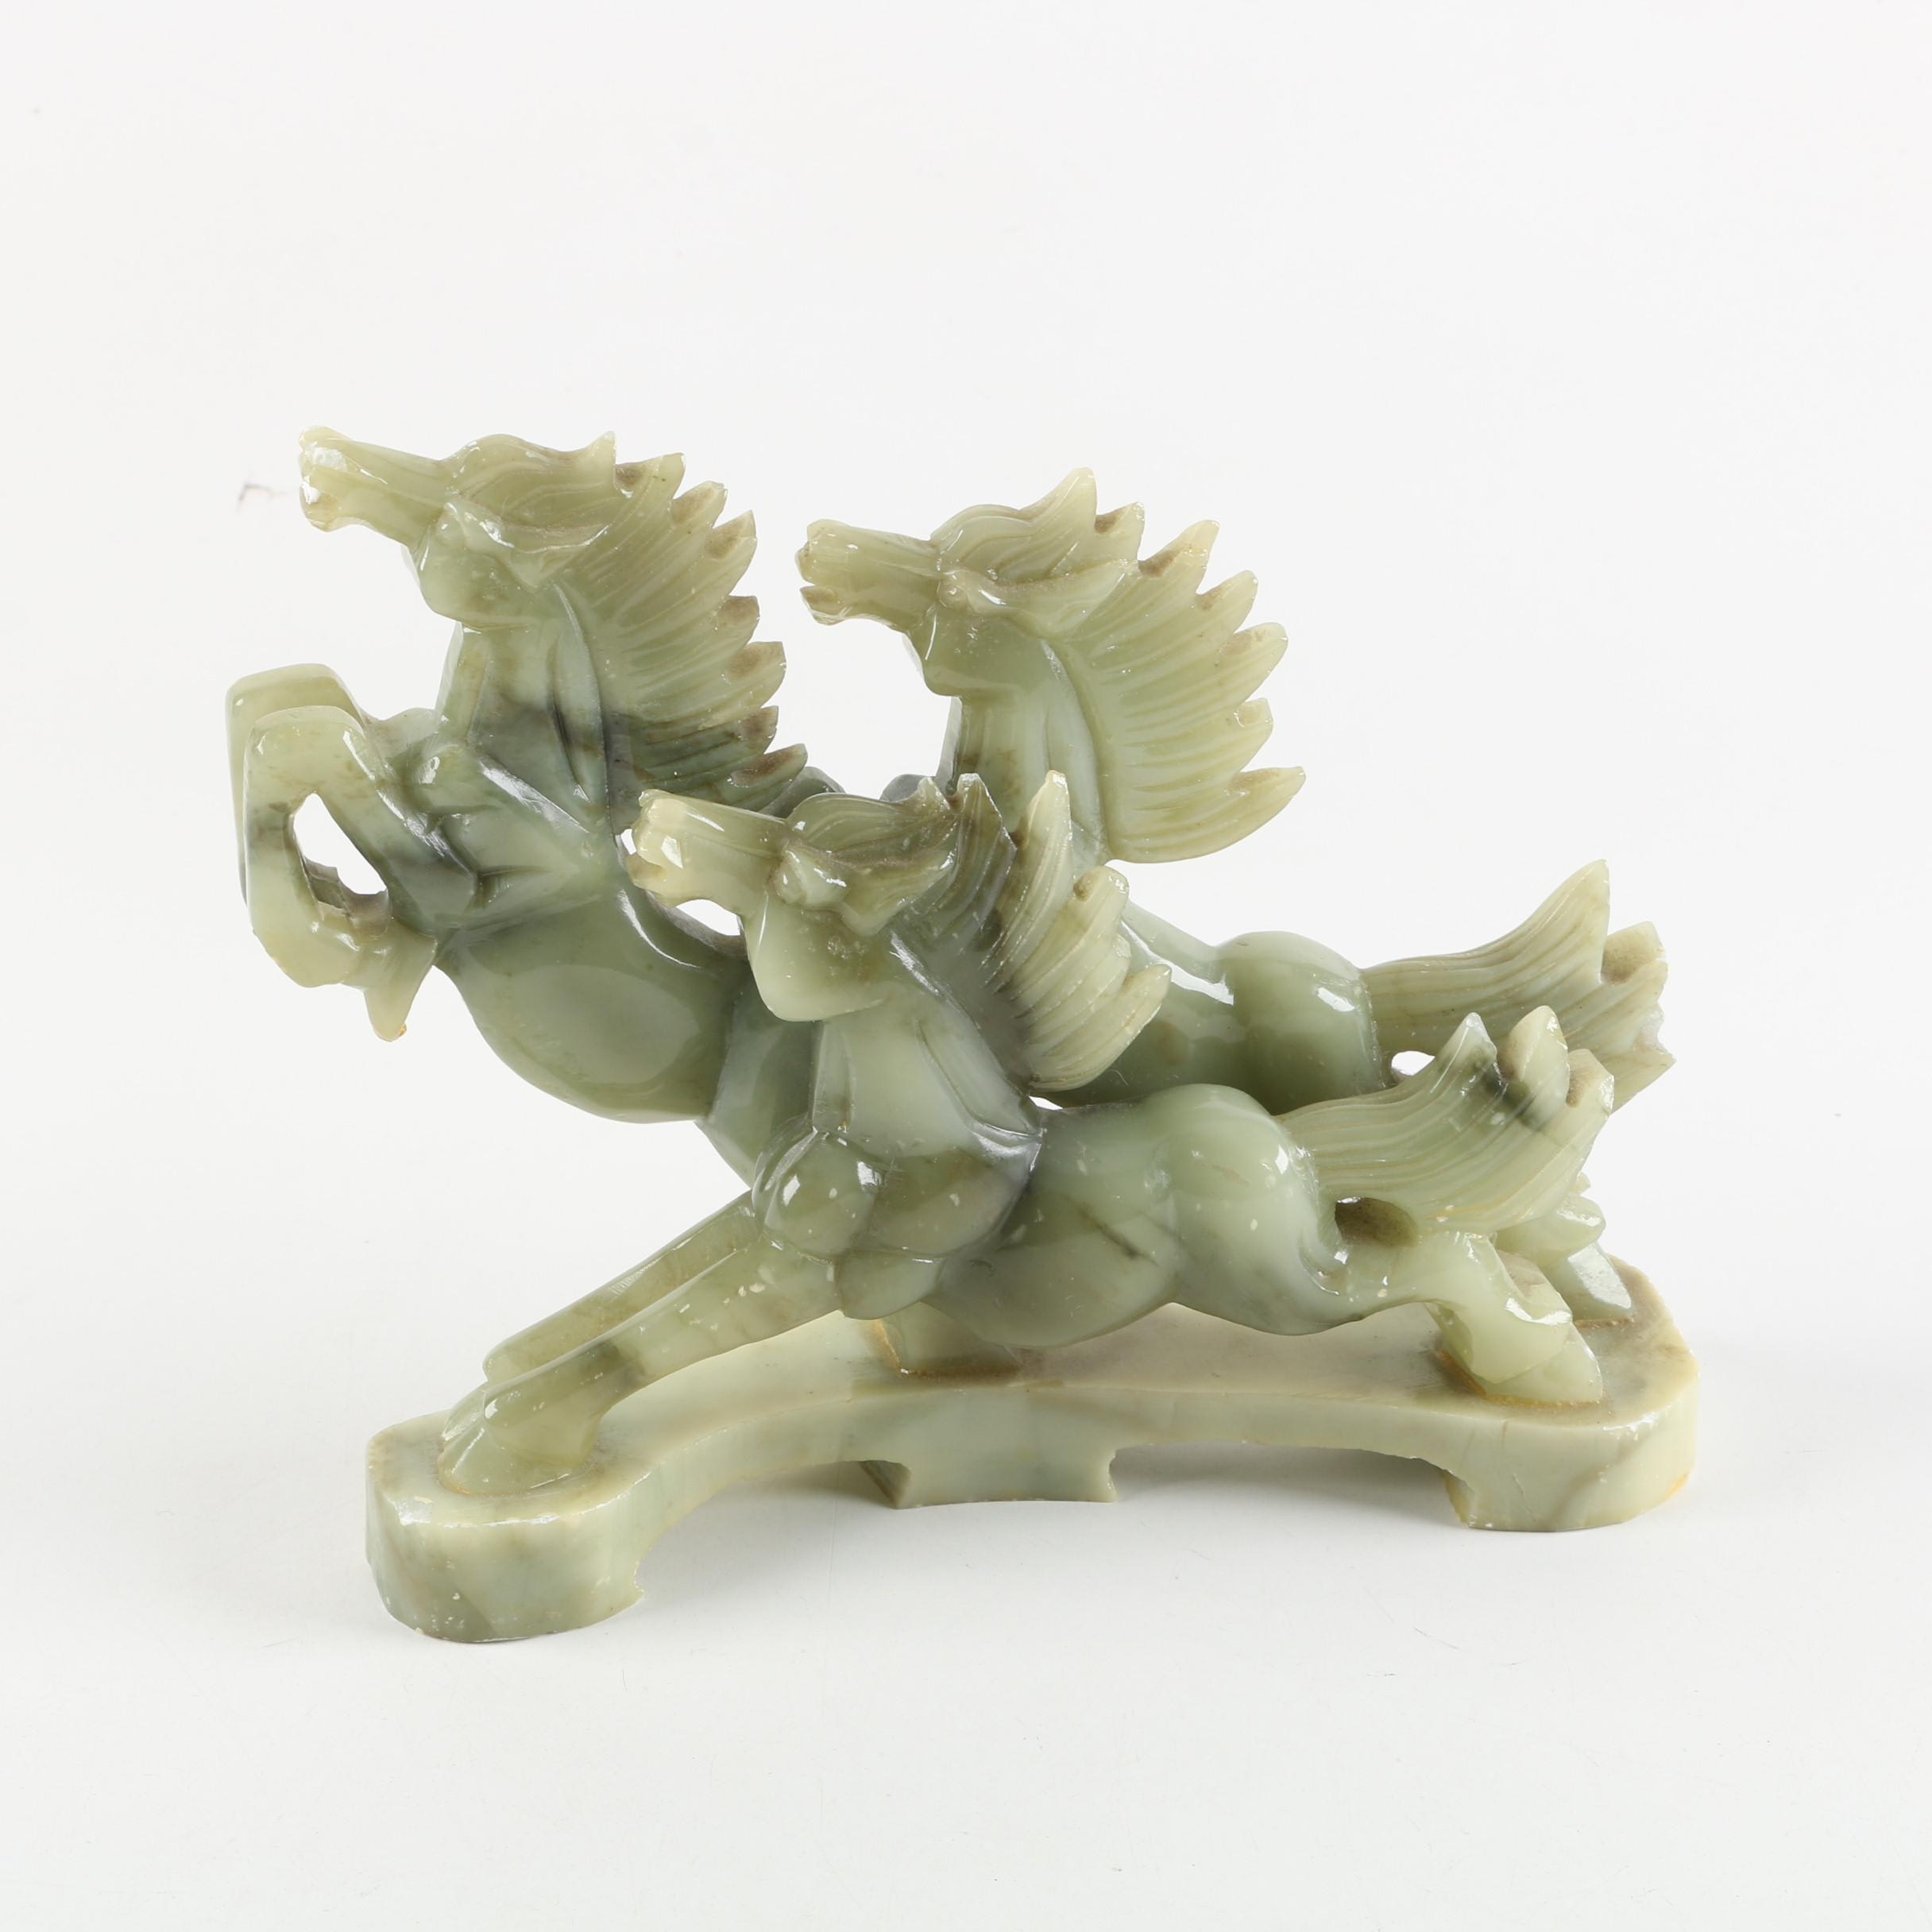 Chinese Carved Serpentine Galloping Horses Figurine